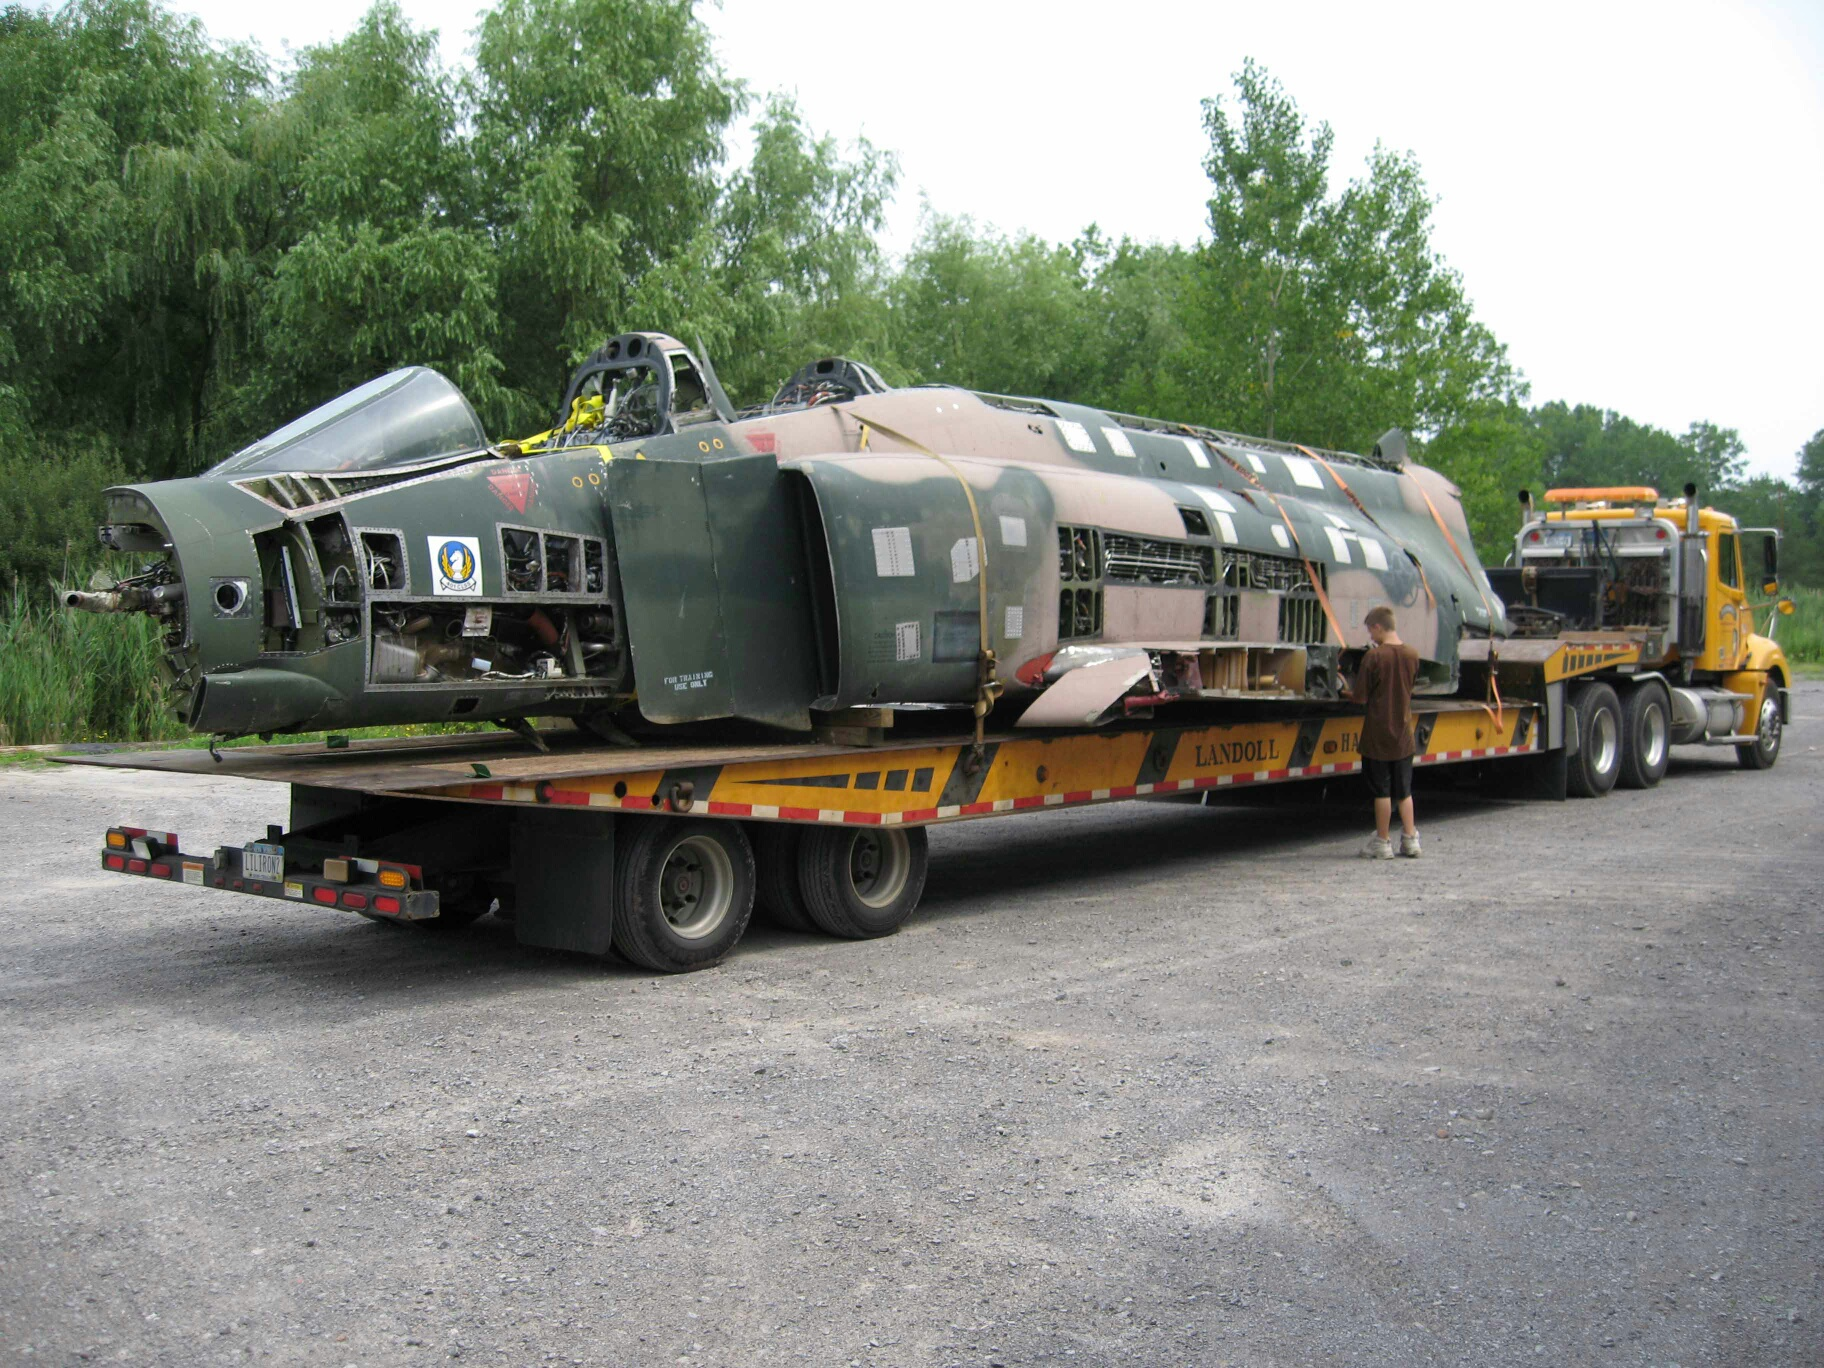 David Garbe's suplus F-4C Phantom II project is for sale. It comes complete with most of the necessary parts. (David Garbe photo)